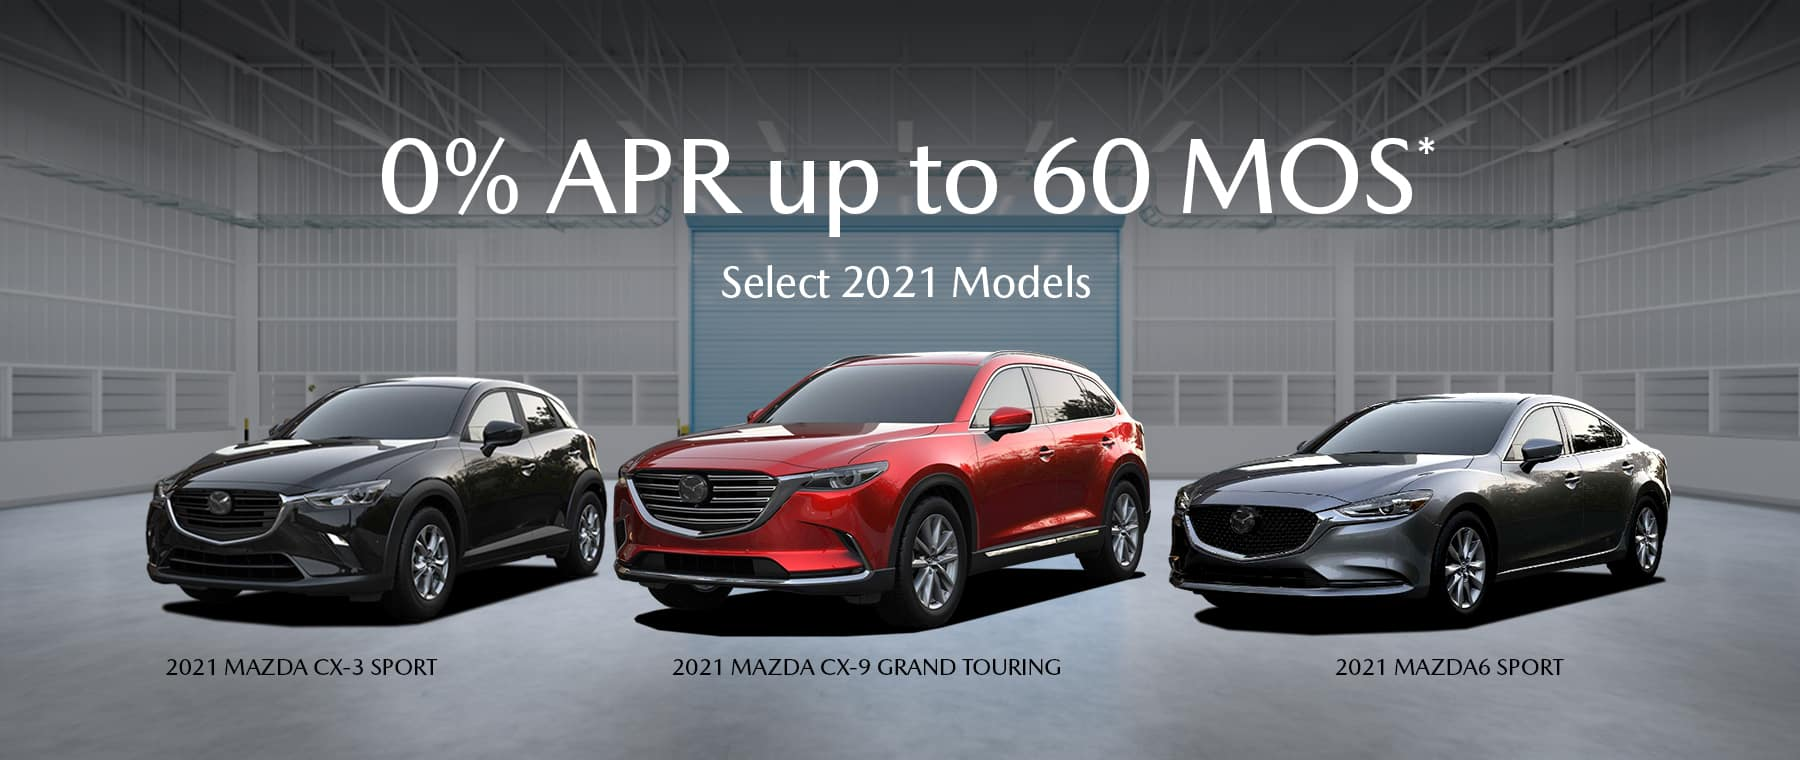 0% APR up to 60 Mos. on select 2021